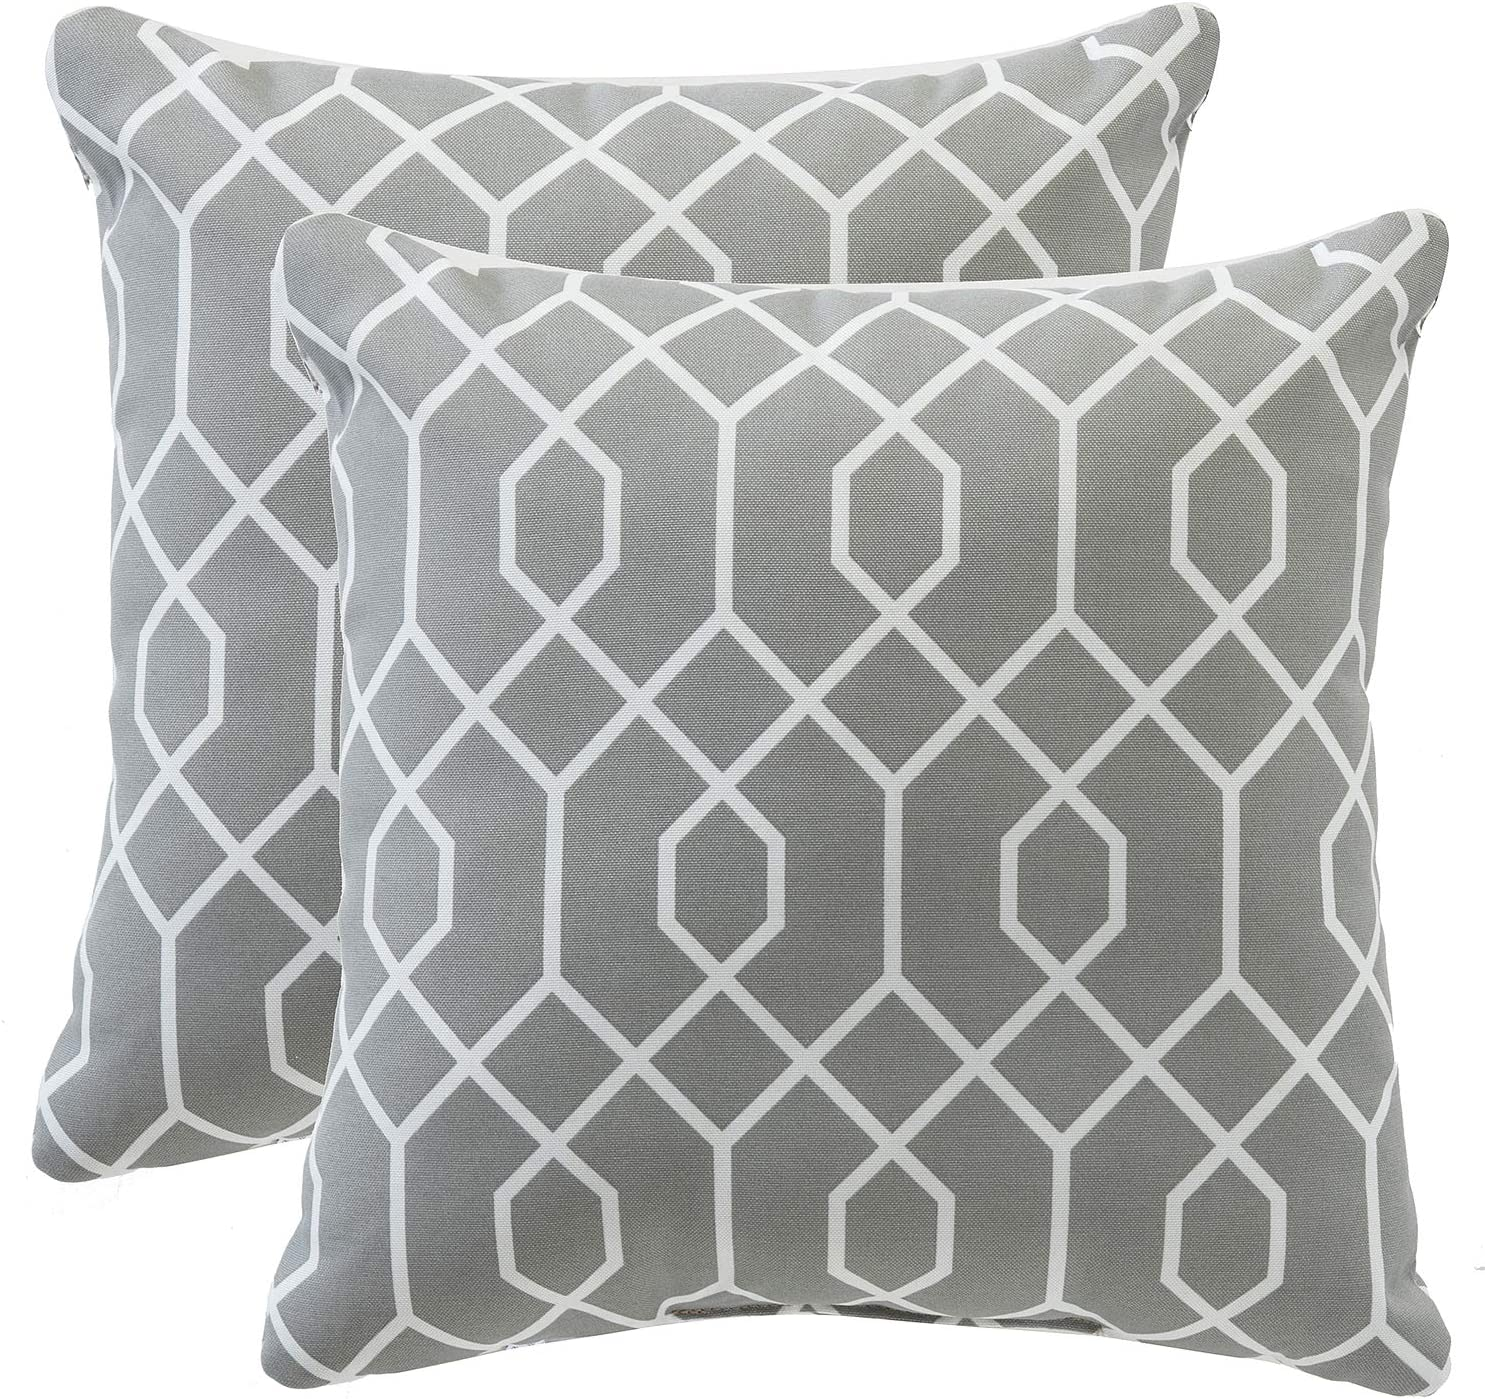 TINA S HOME 16 Grey Outdoor Pillows Waterproof Geometric Throw Pillow for Patio Bench Swing Couch Decor Set of 2